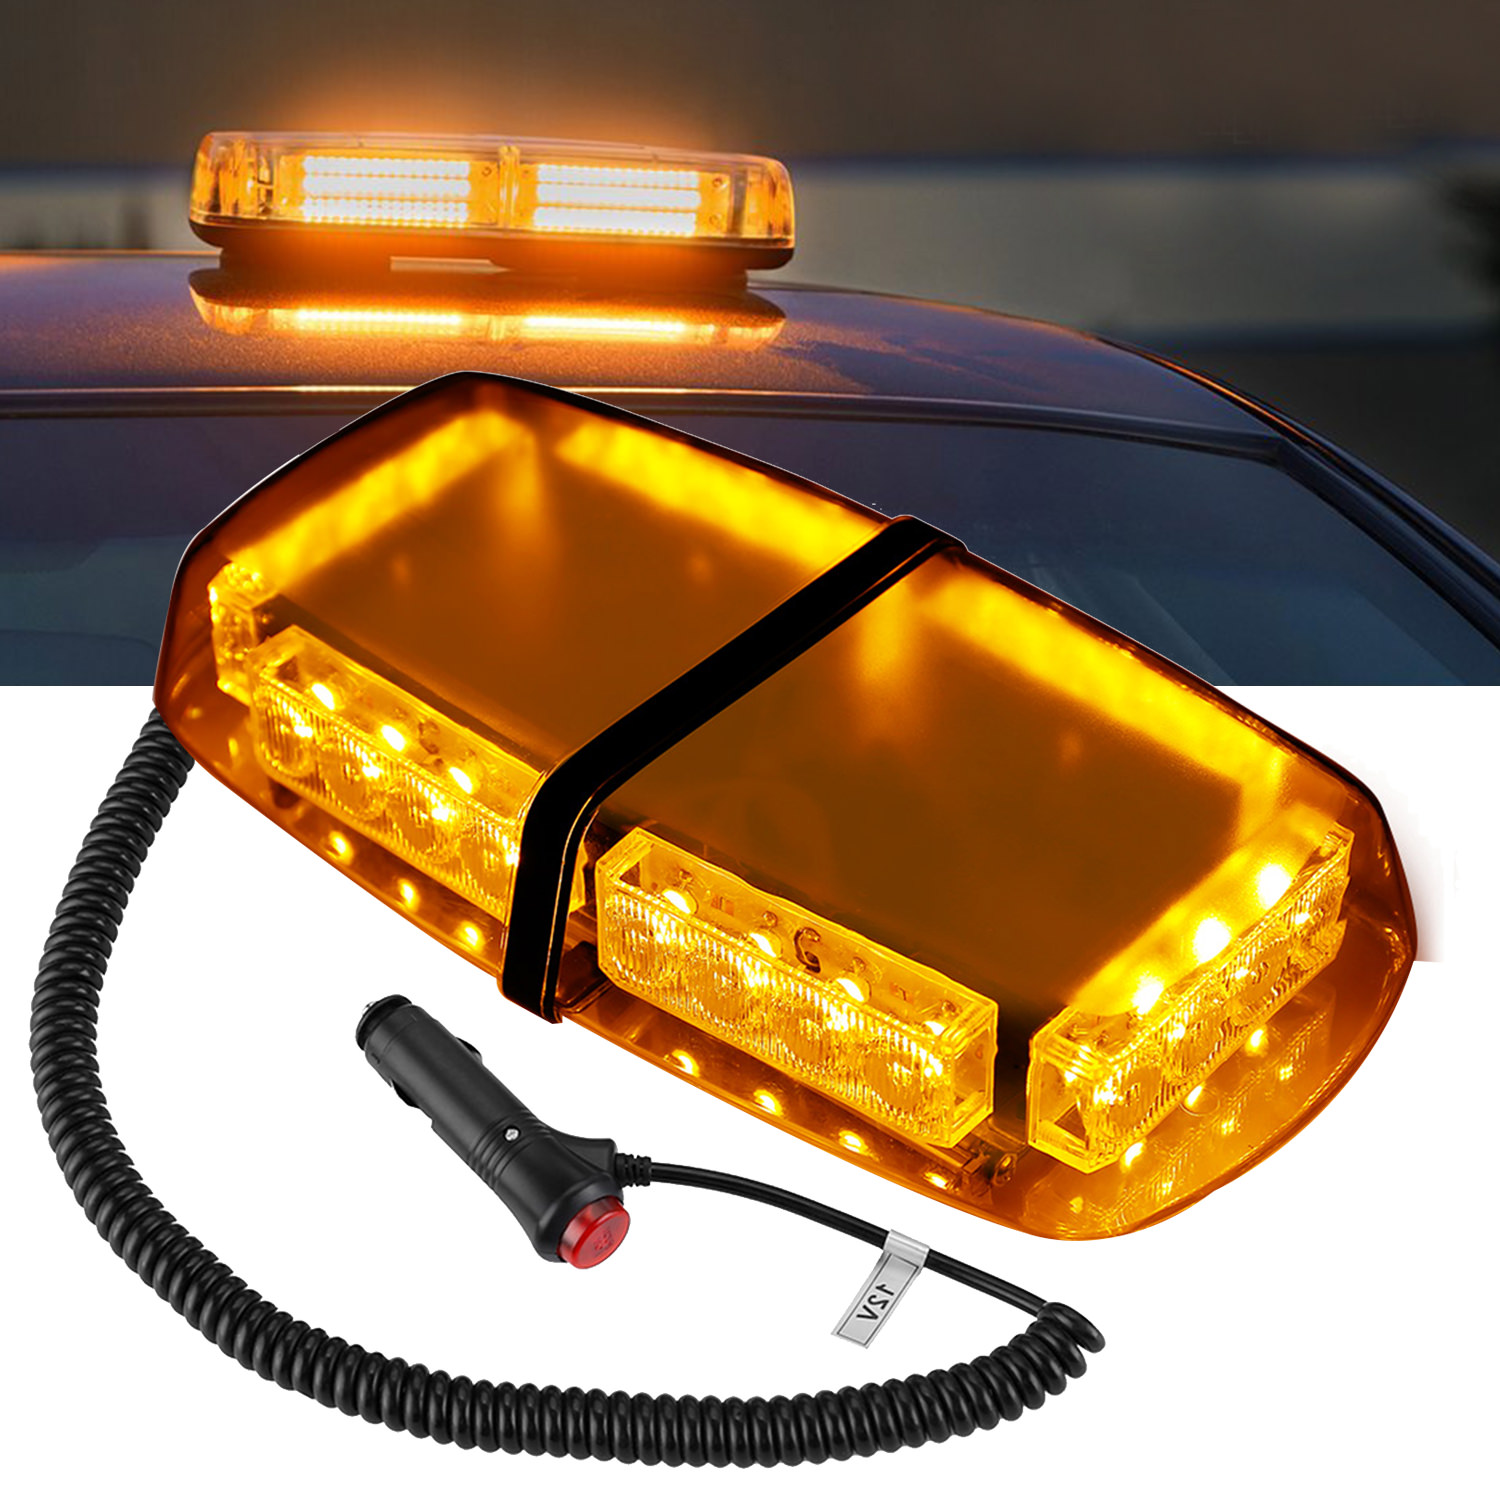 Finether 24 LED Vehicle Rooftop Hazard Police Emergency Warning Flashlight Enforcement Magnetic Base Cigarette Amber Strobe Lights for Car Truck